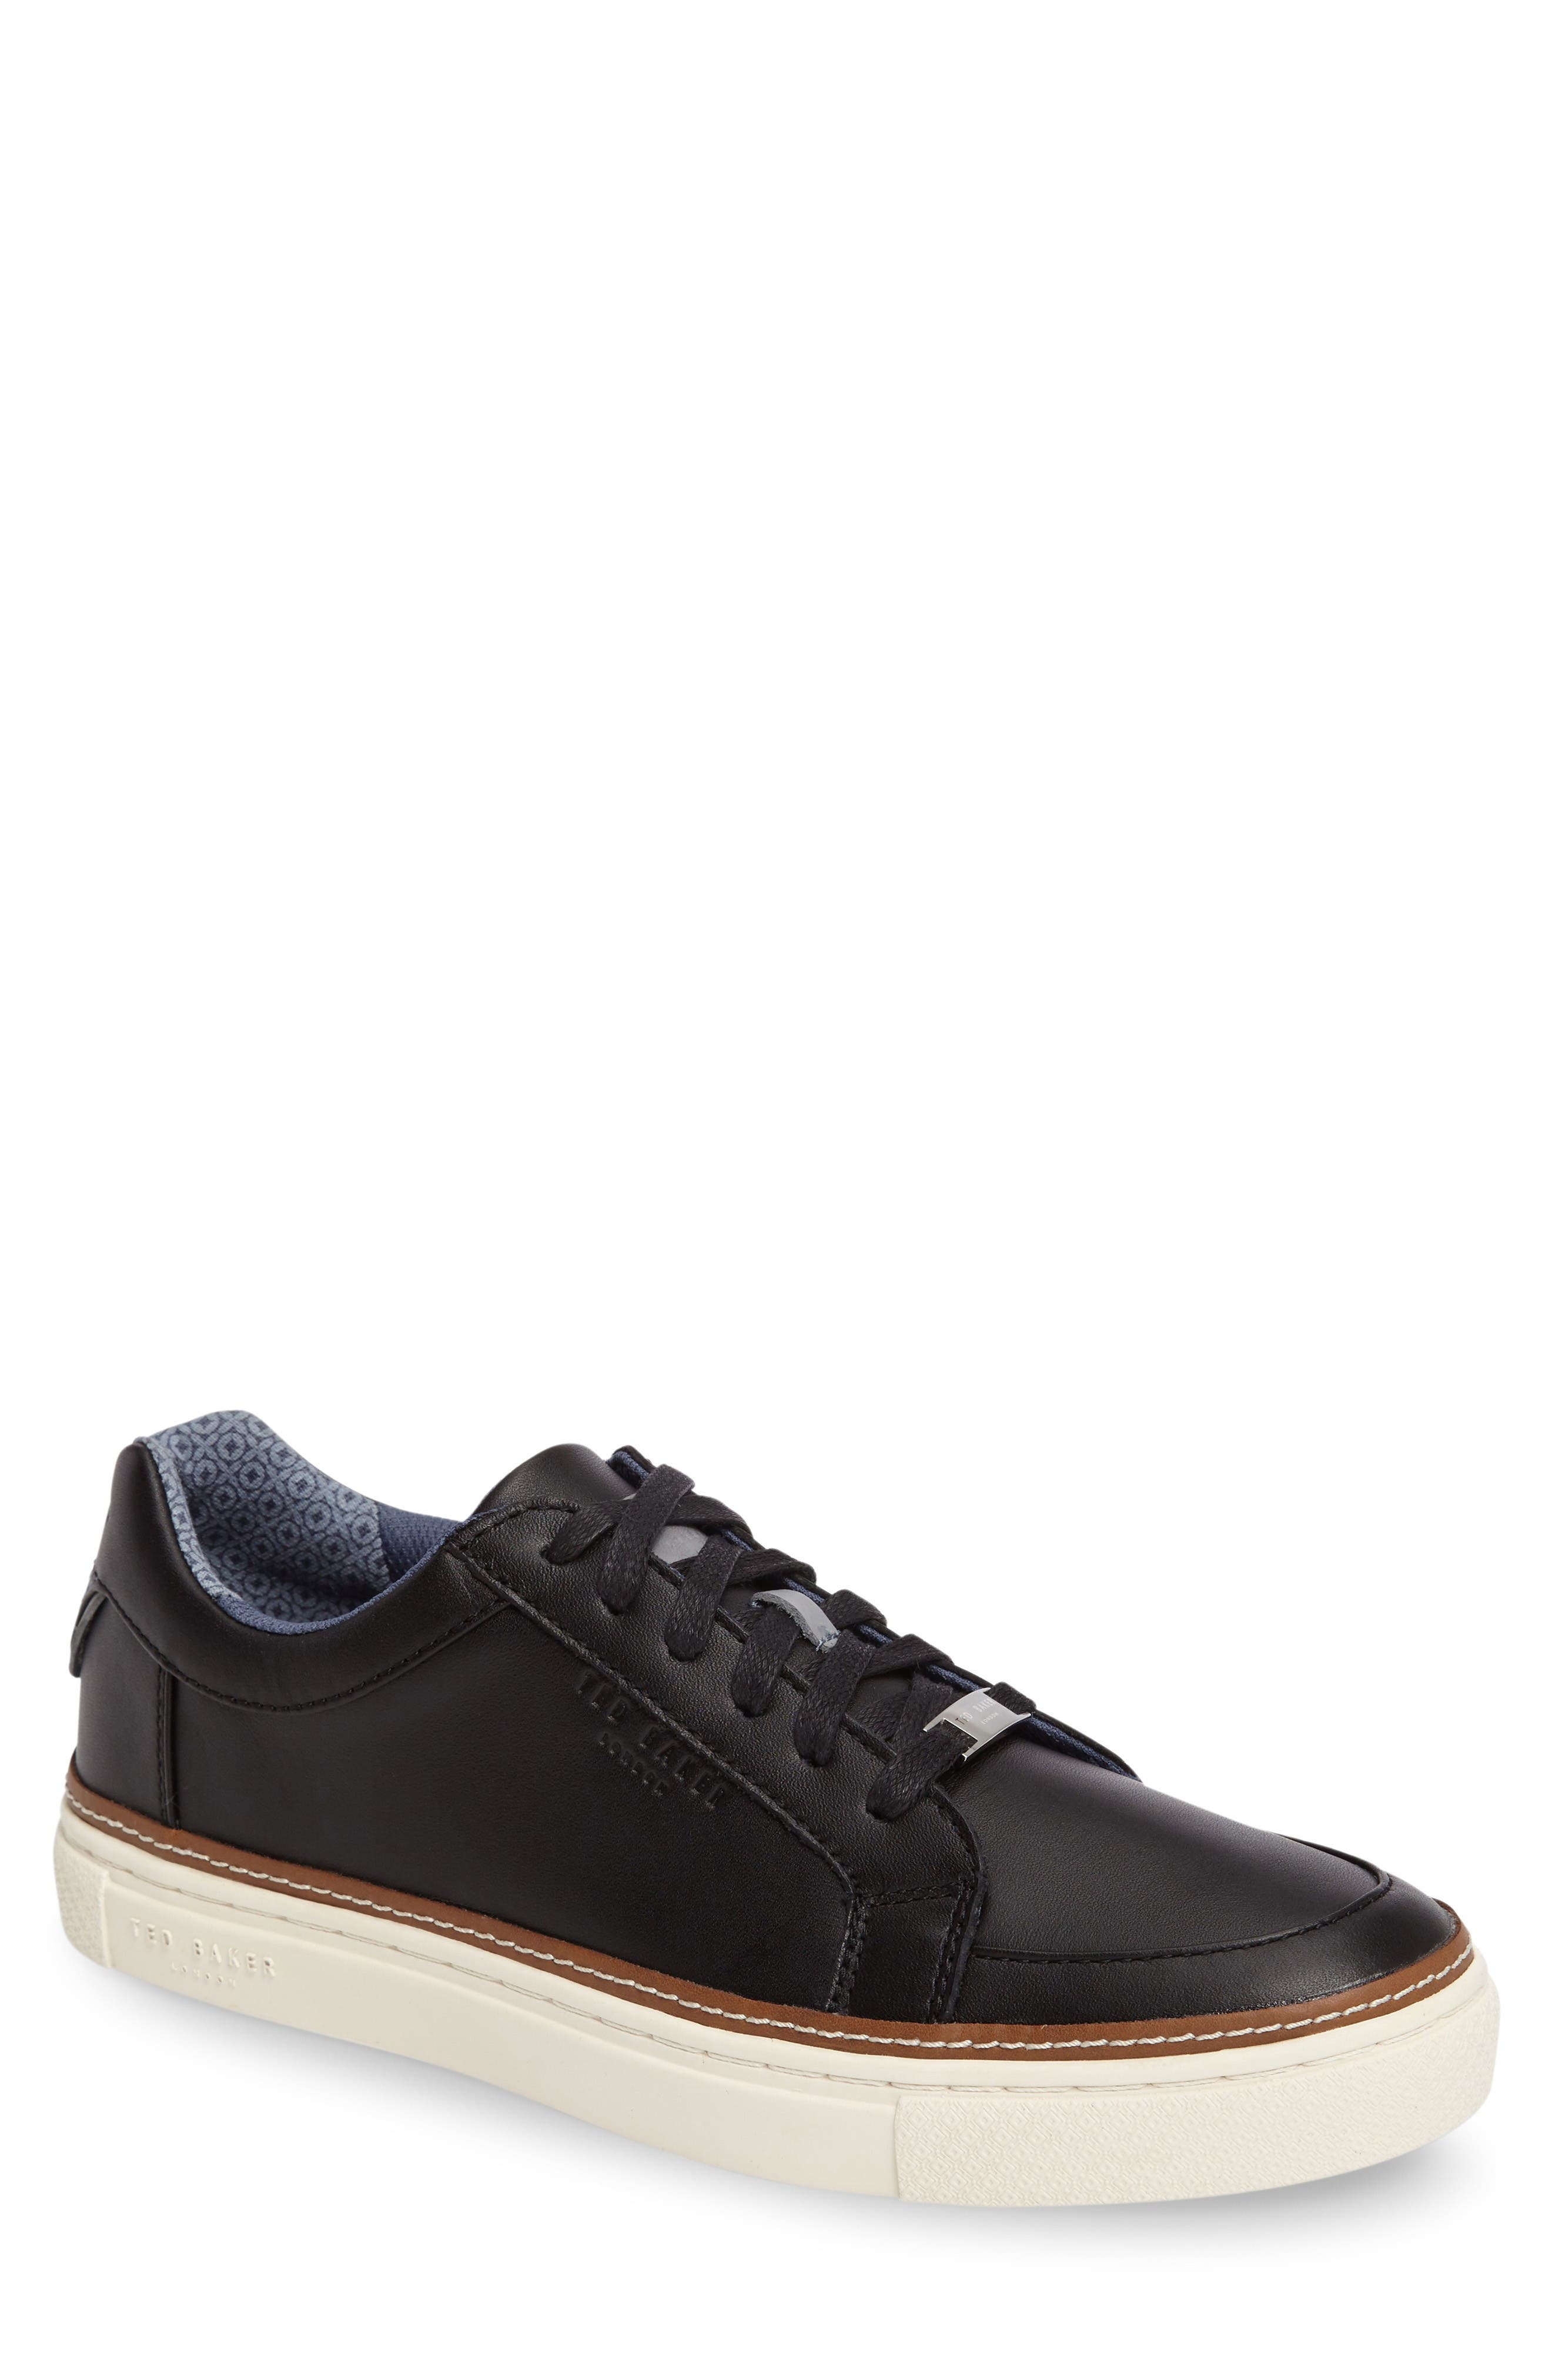 Rouu Sneaker,                             Main thumbnail 1, color,                             Black Leather